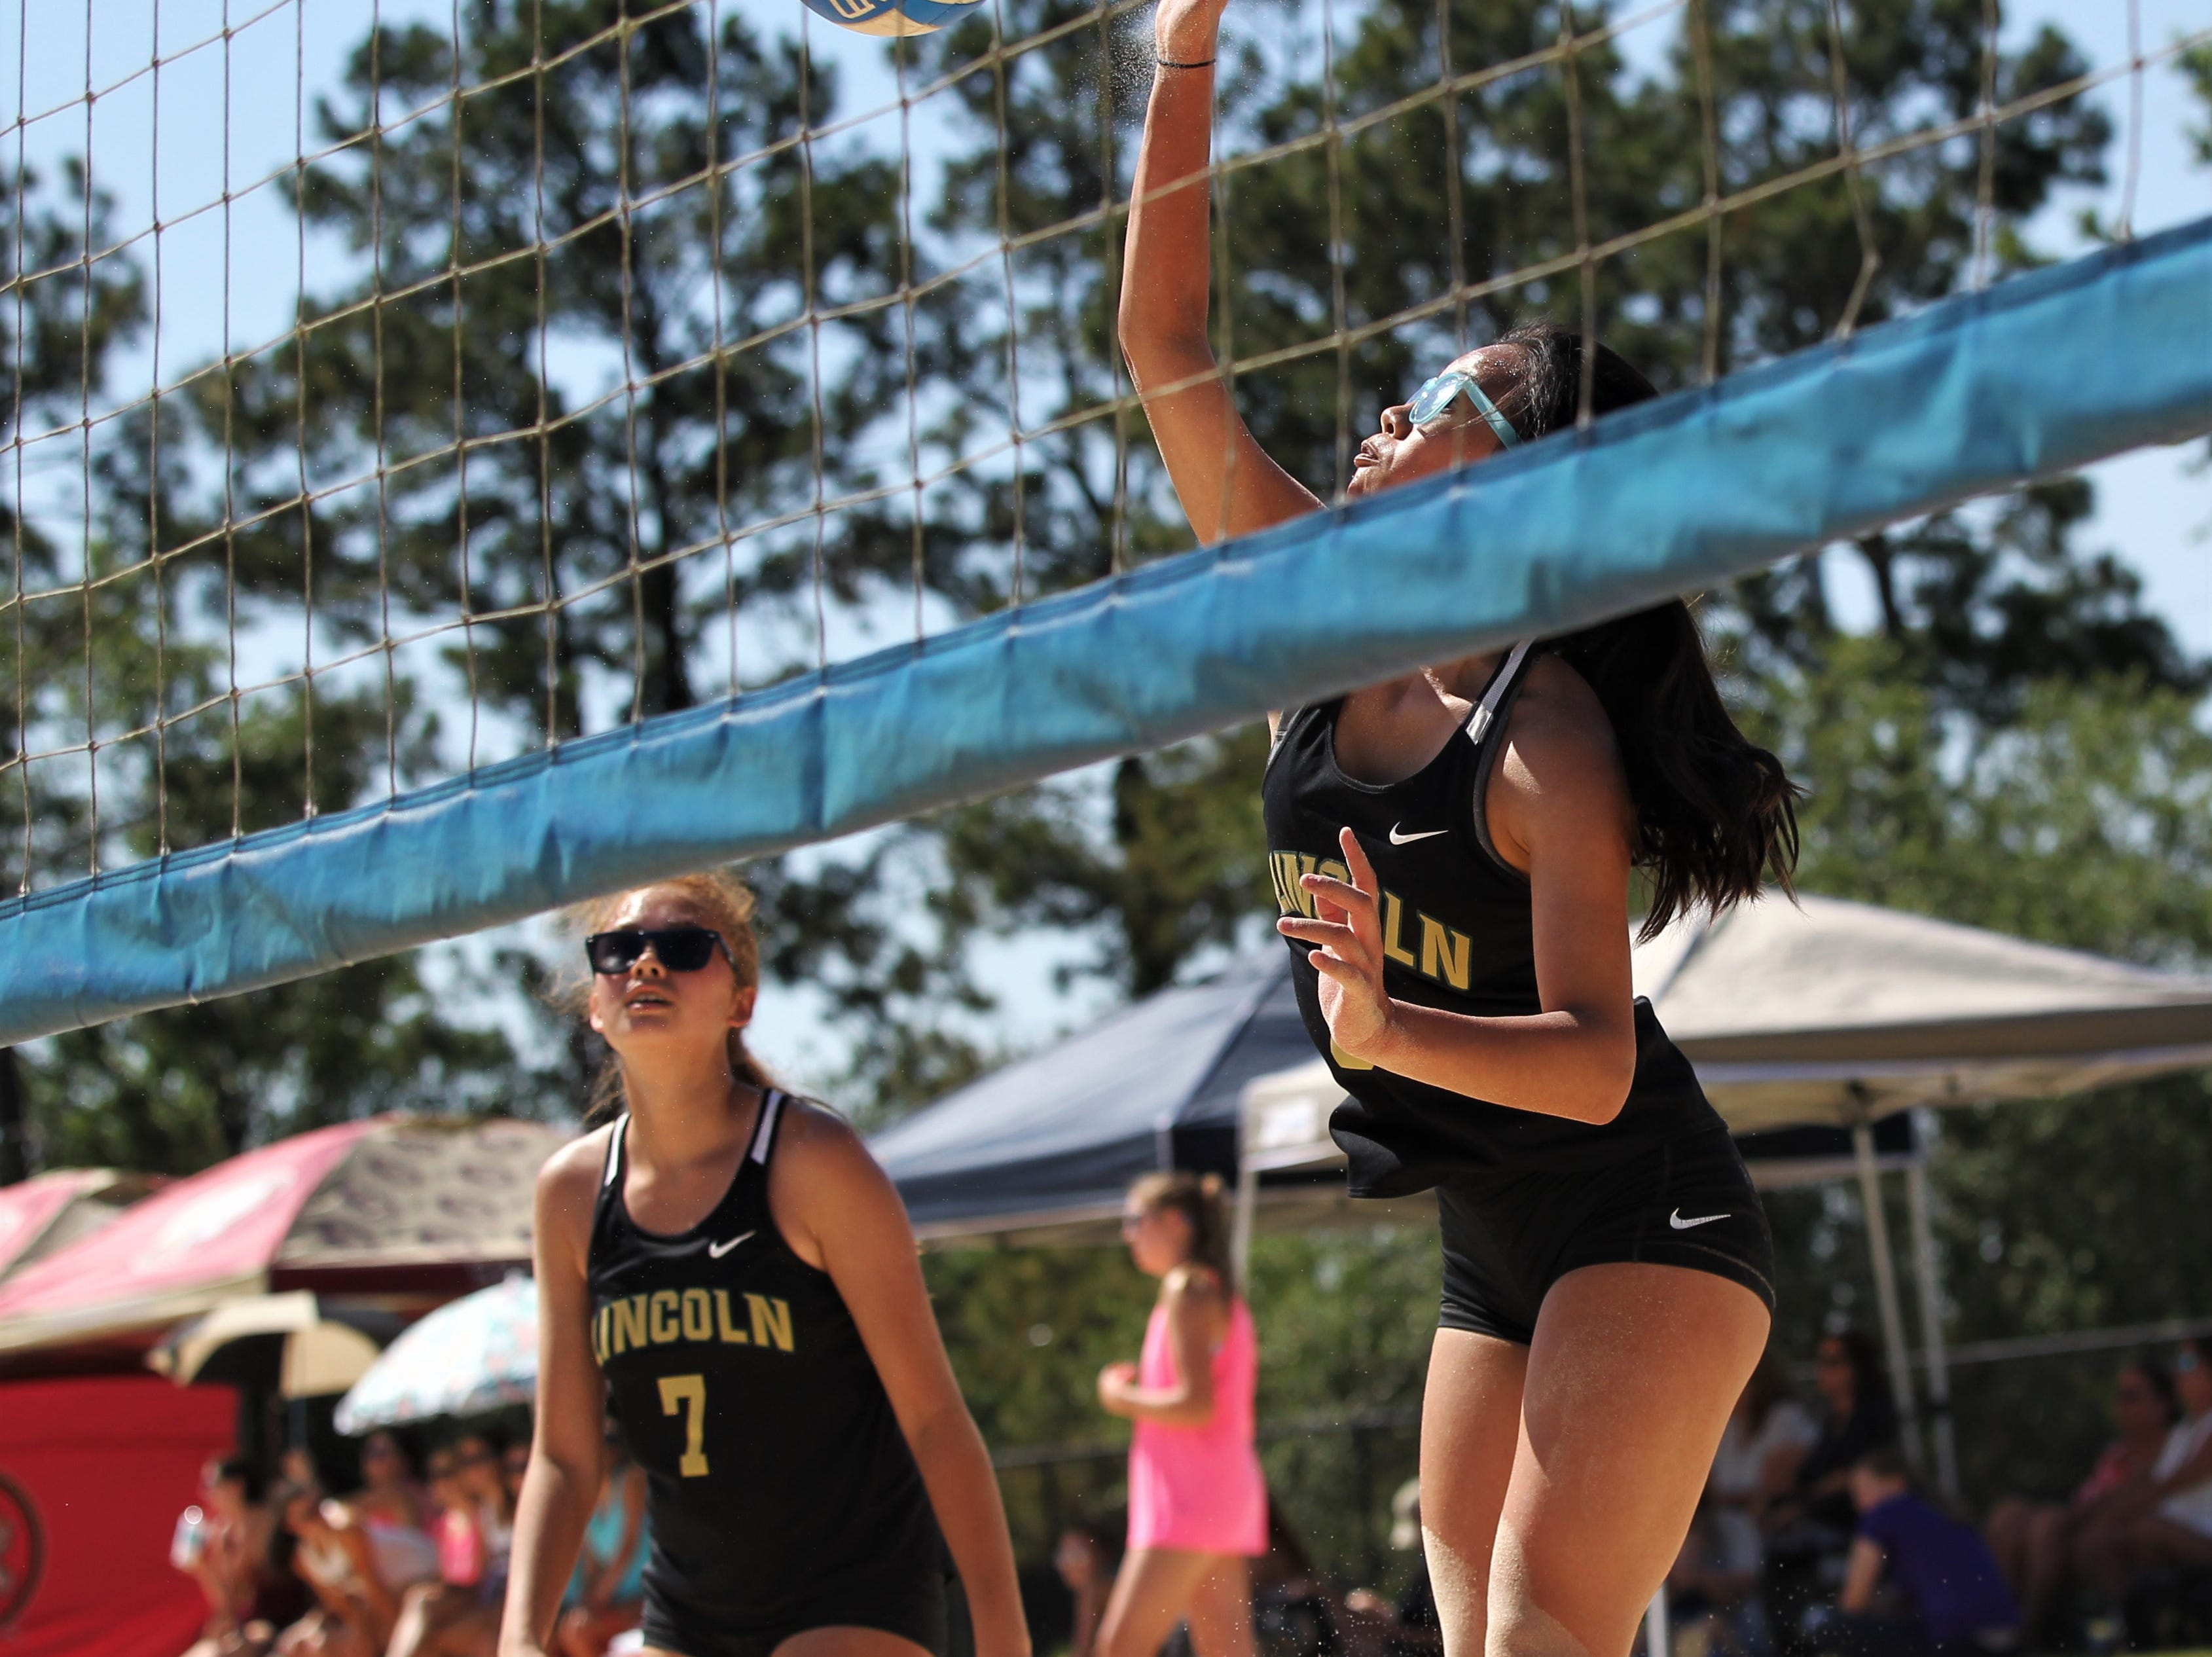 The 2019 Tallahassee high school beach volleyball championships at Tom Brown Park, semifinal matches, on May 7, 2019.